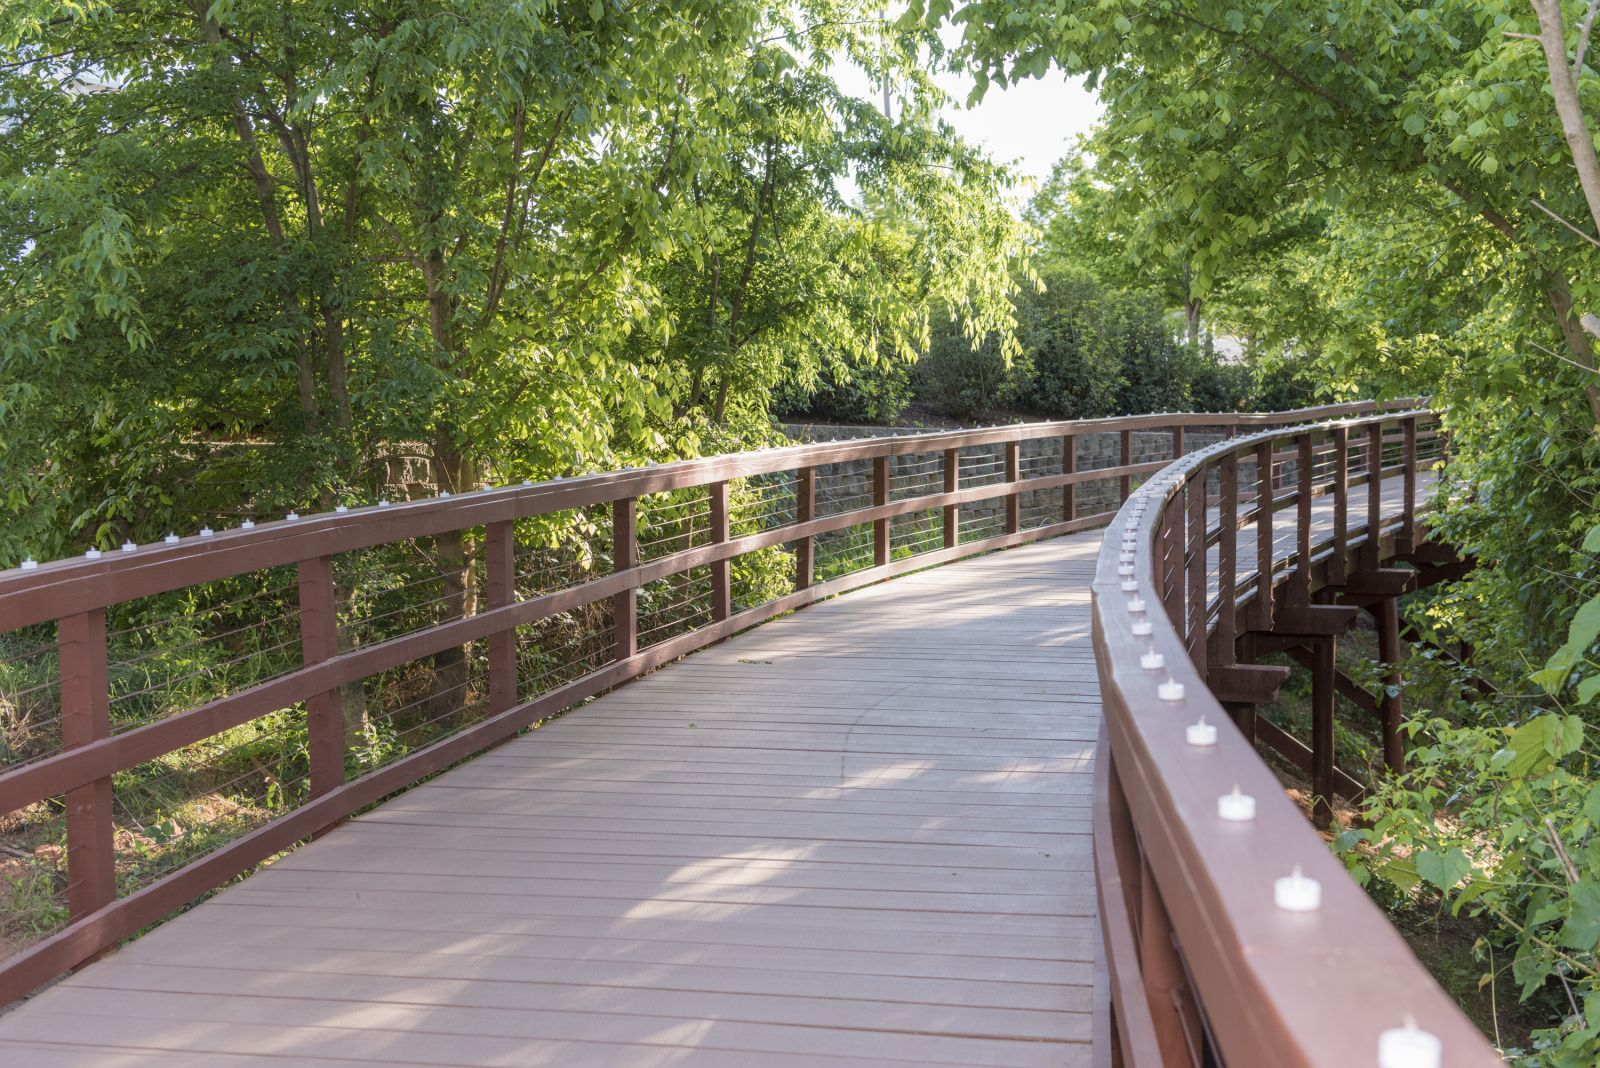 This is the boardwalk at Cancer Survivors Park in Greenville. (Photo/Provided)